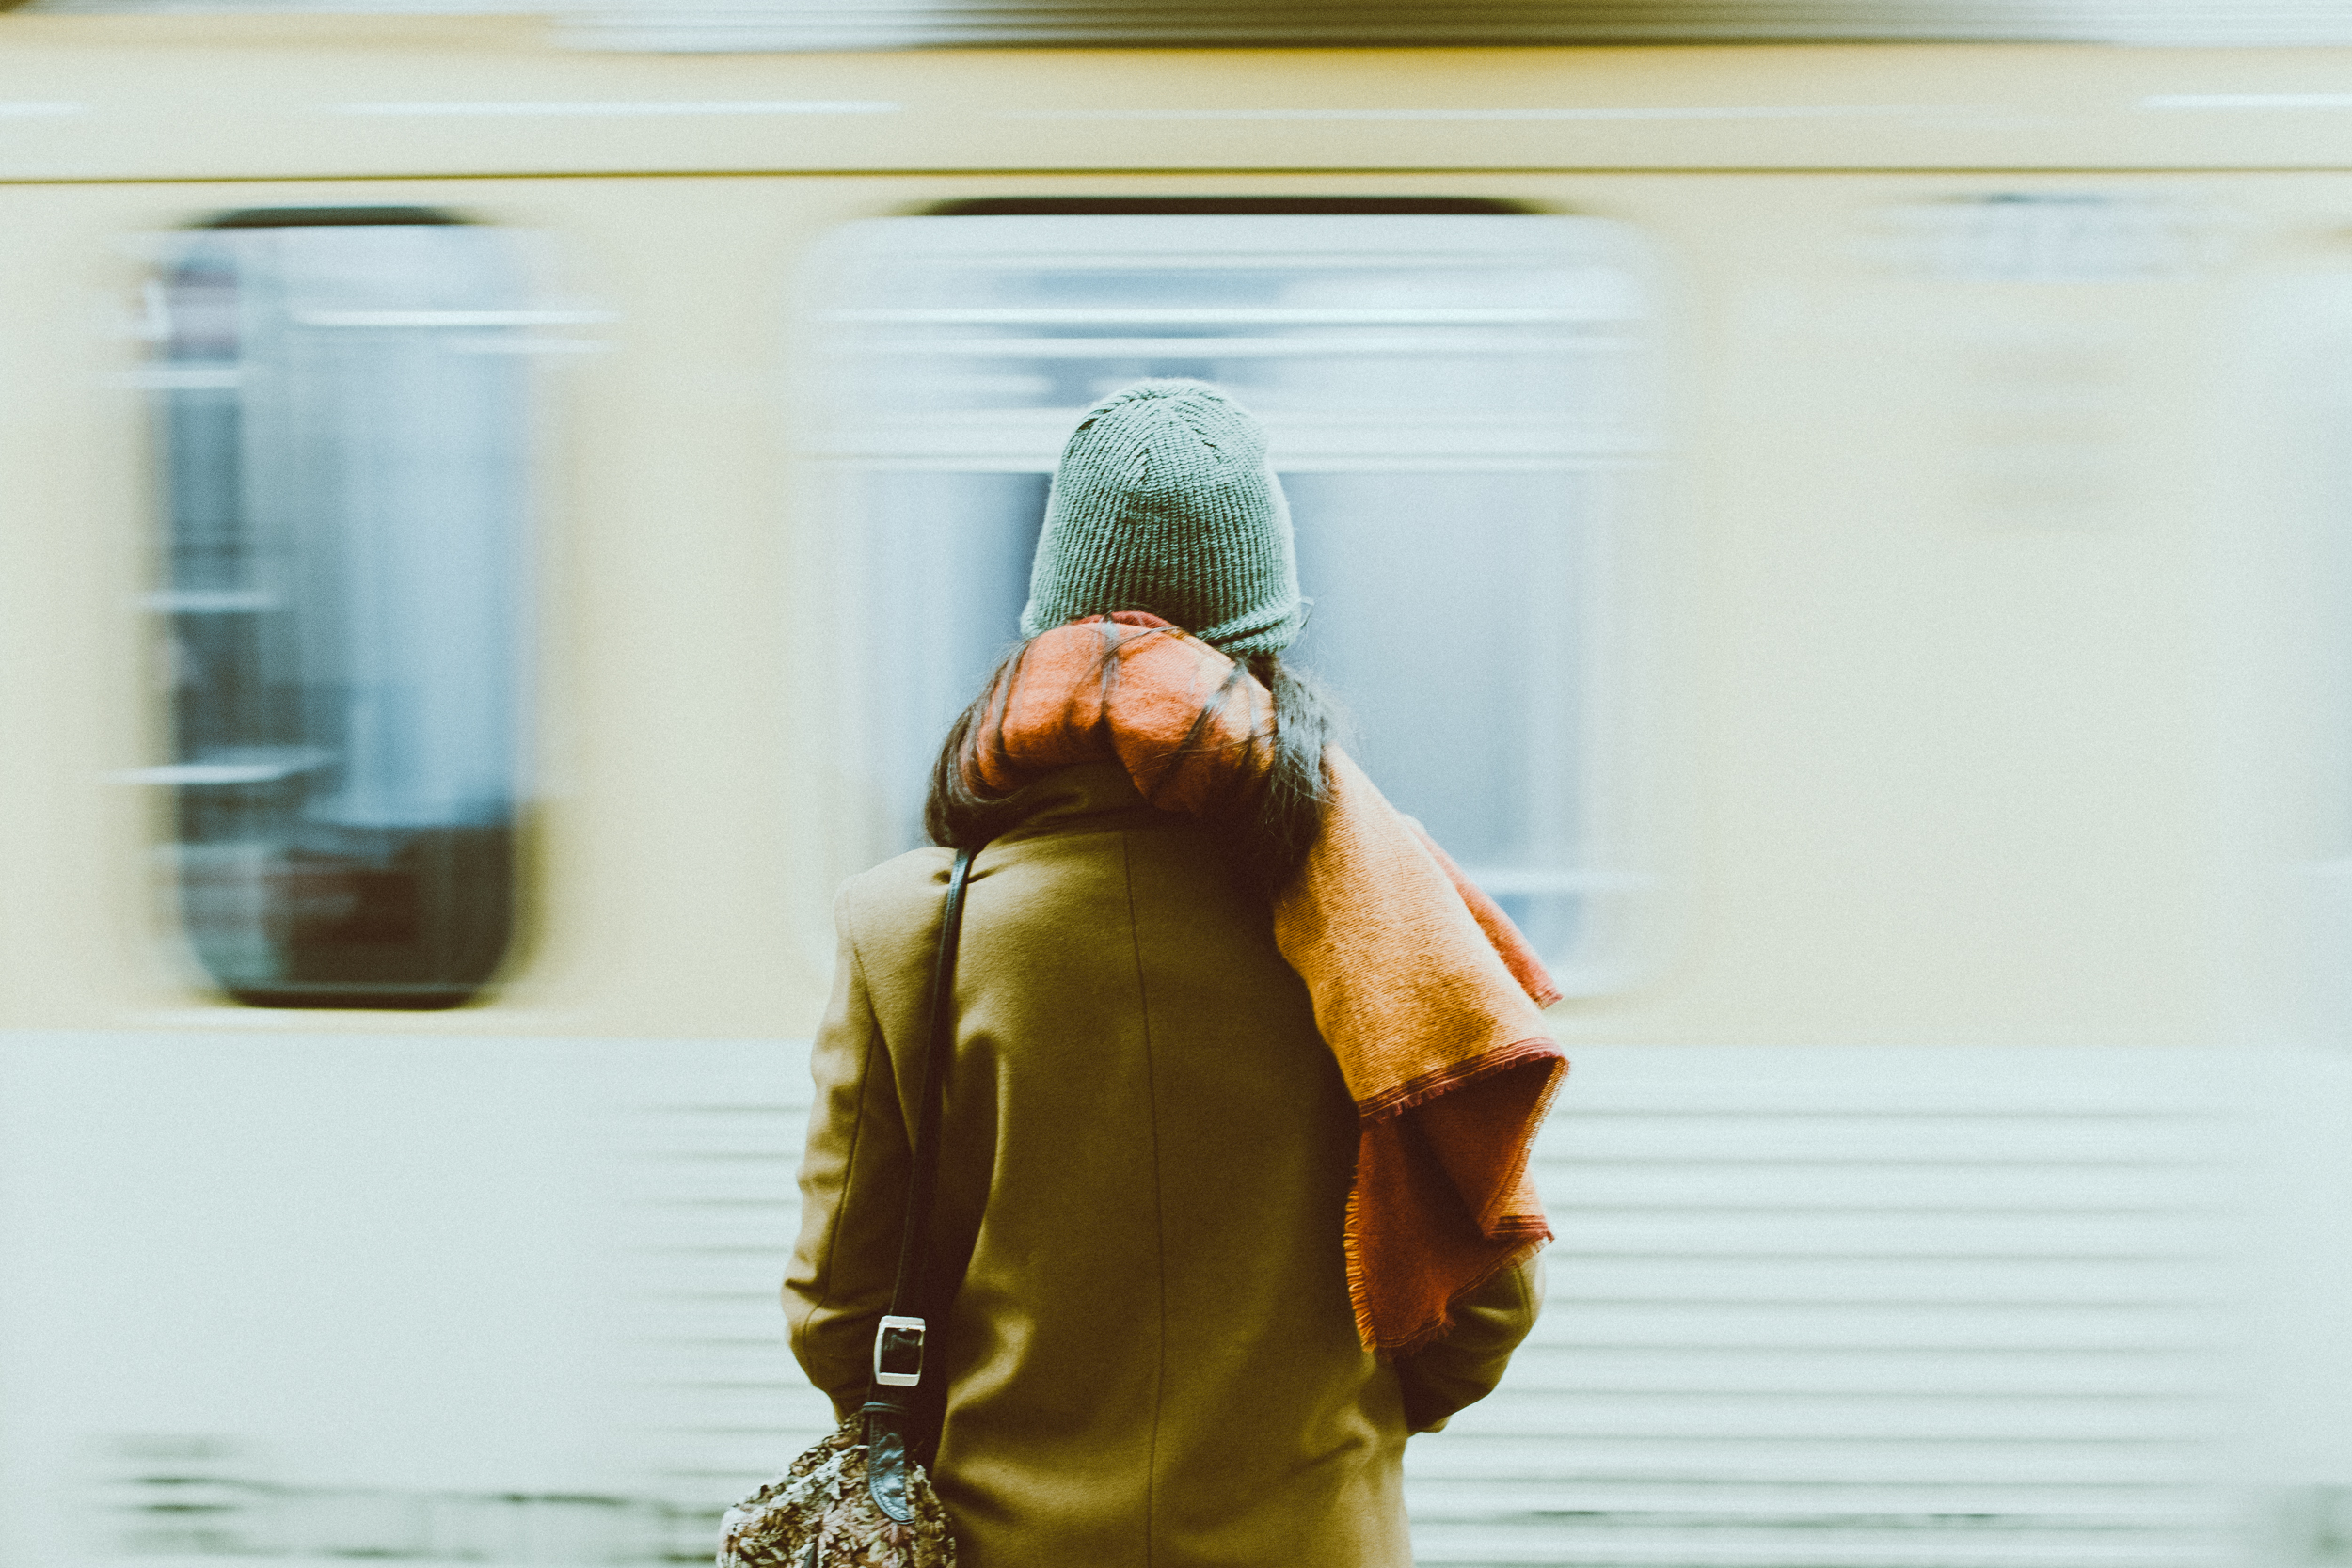 Time-Lapse Photography of Person Standing Near Train